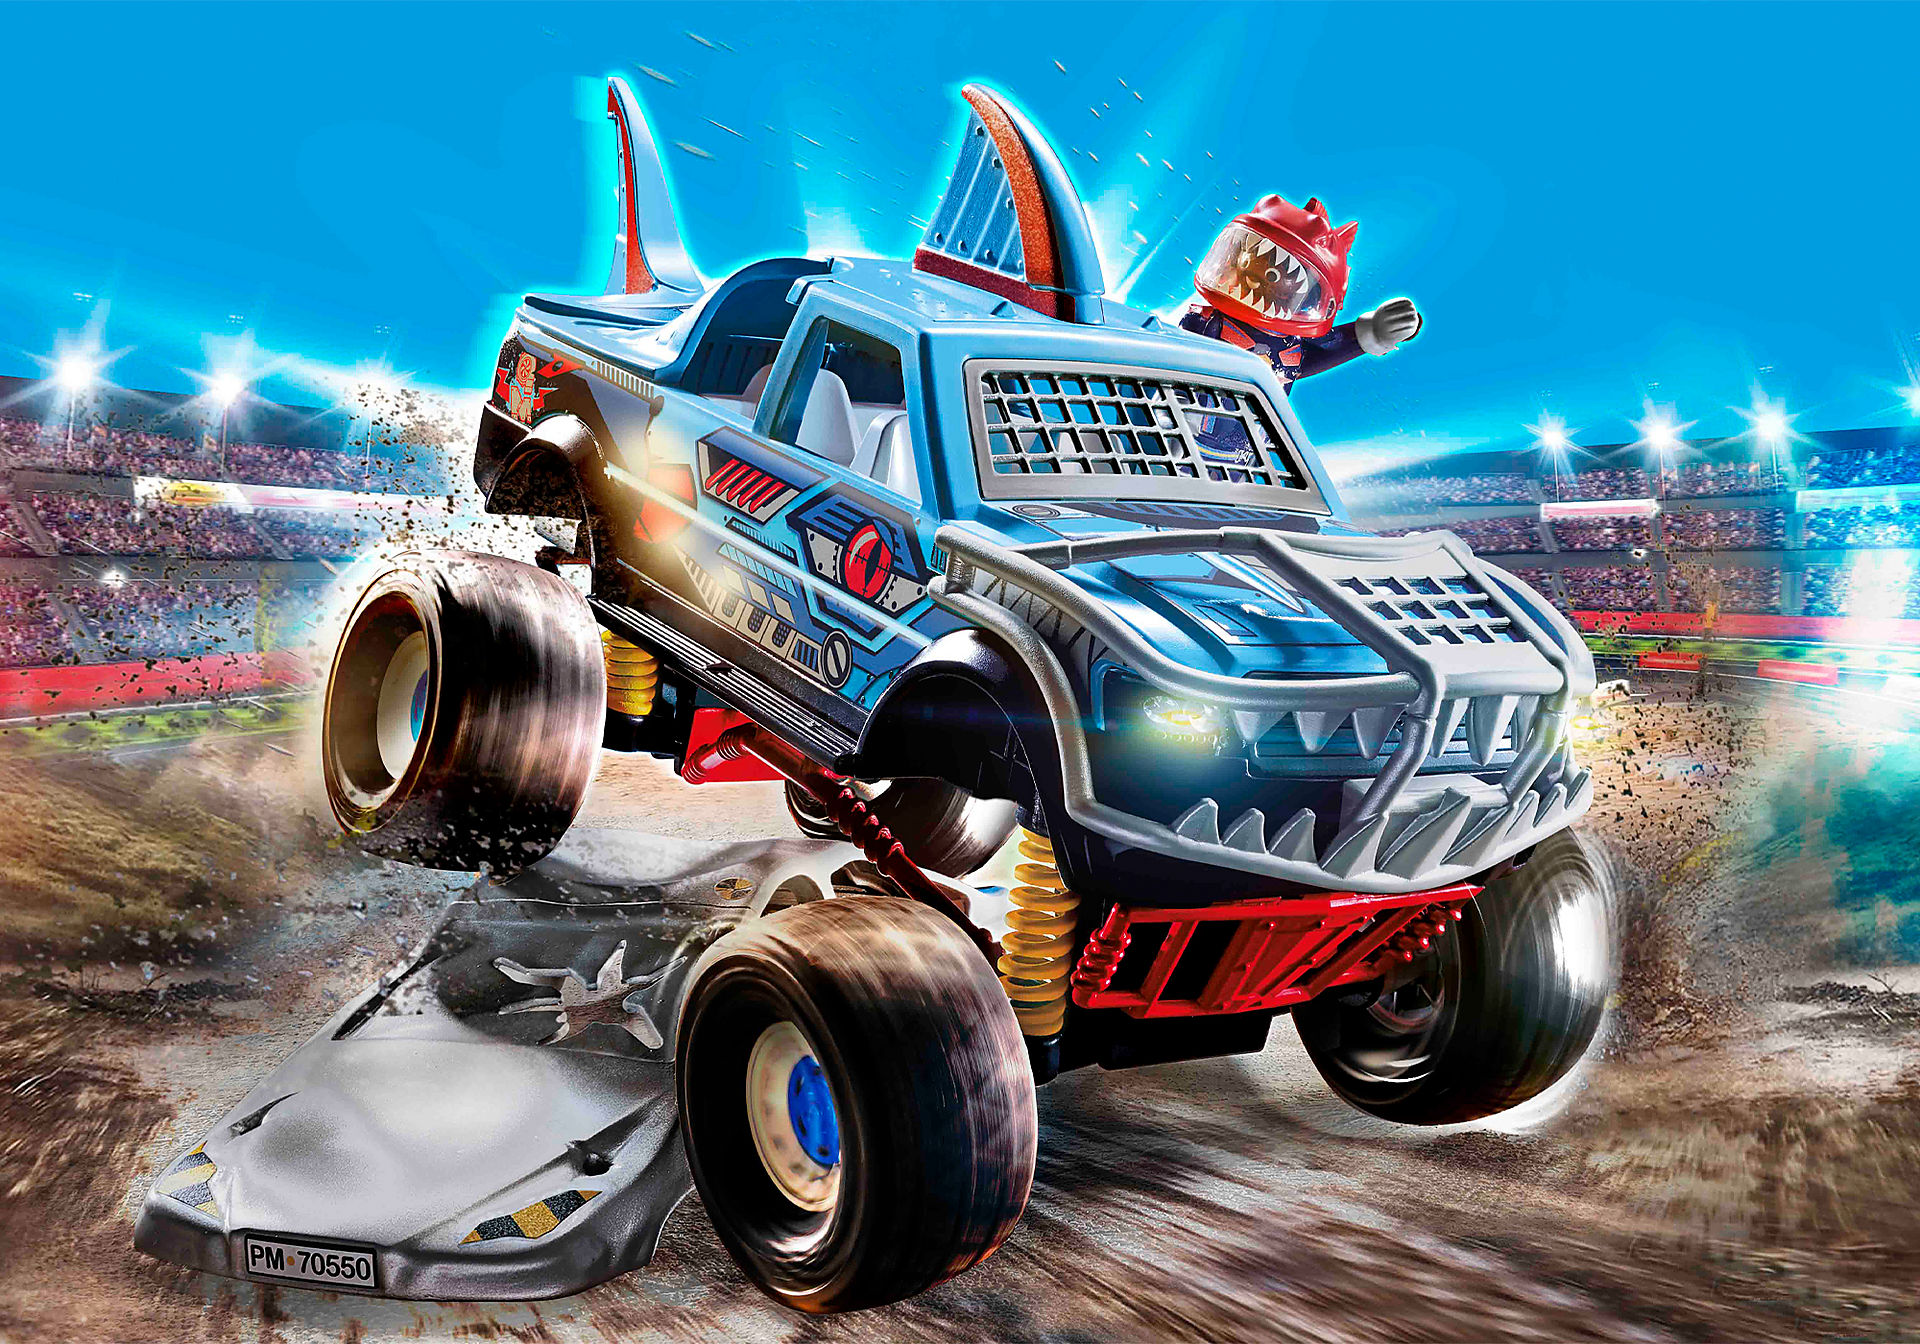 70550 Stunt Show Shark Monster Truck zoom image1